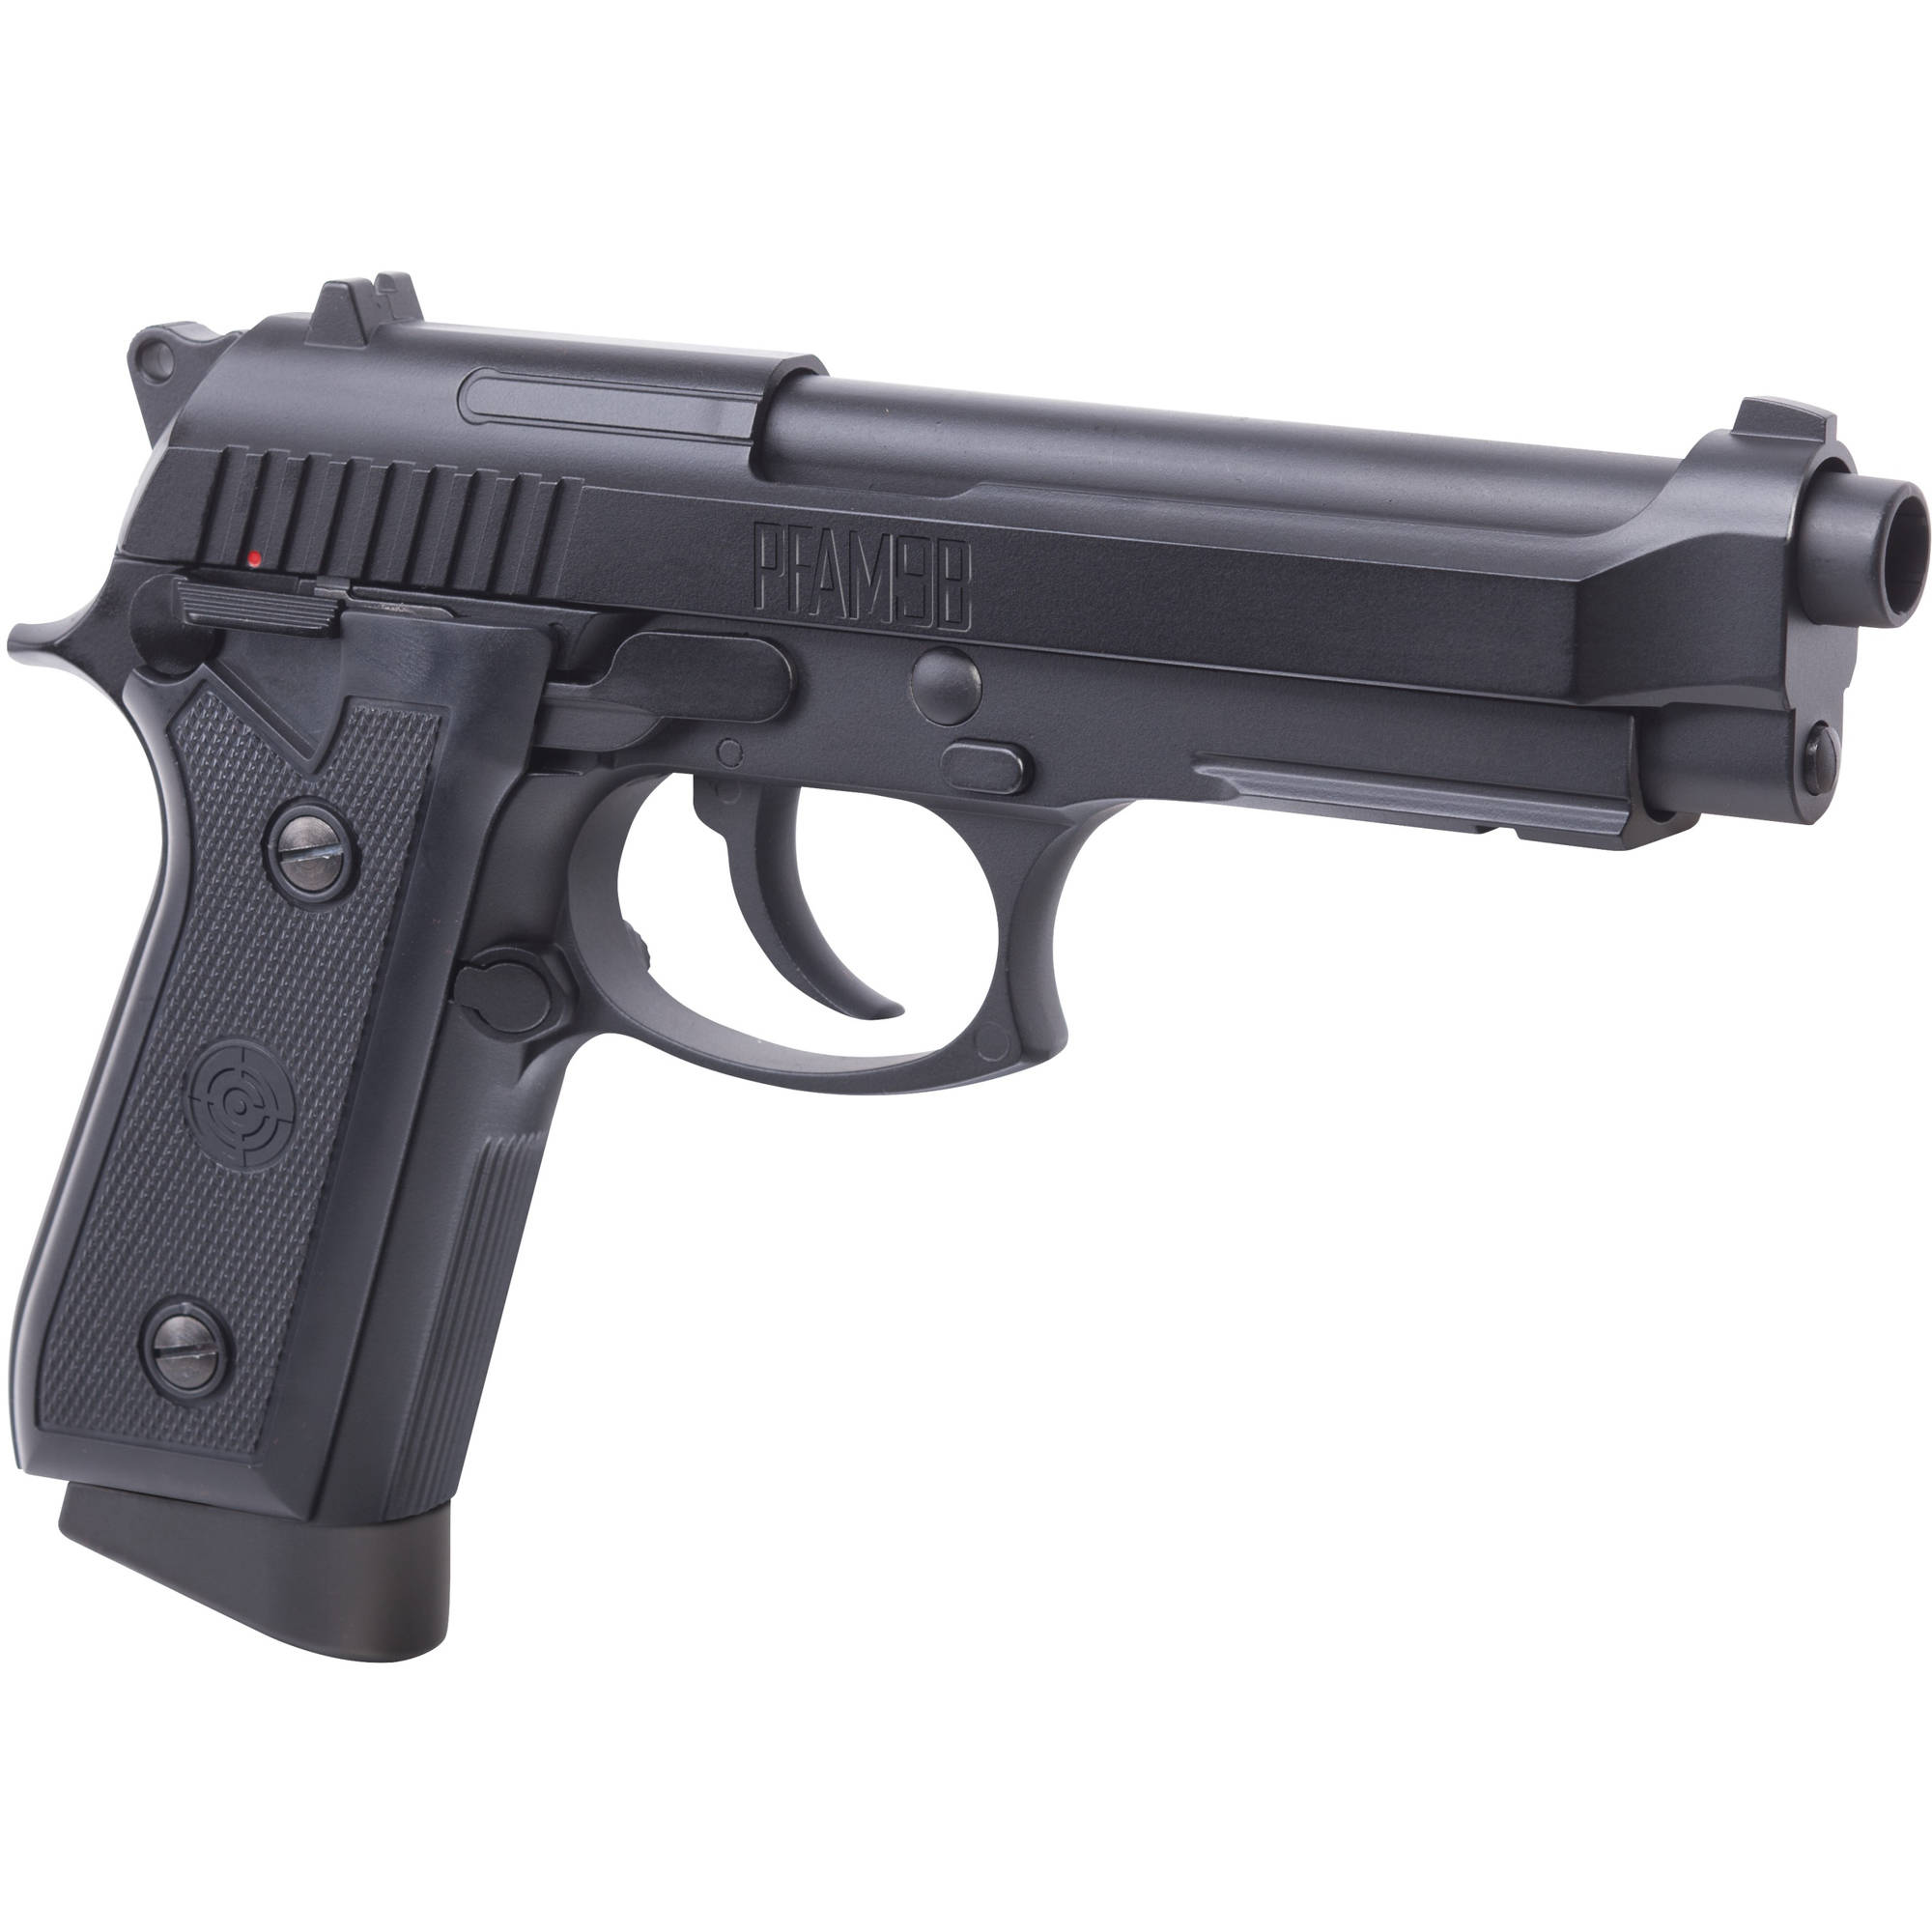 Click here to buy Crosman PFAM9B Full Metal Blowback .177 Caliber Full Semi-Auto CO2 Air Pistol by Crosman.